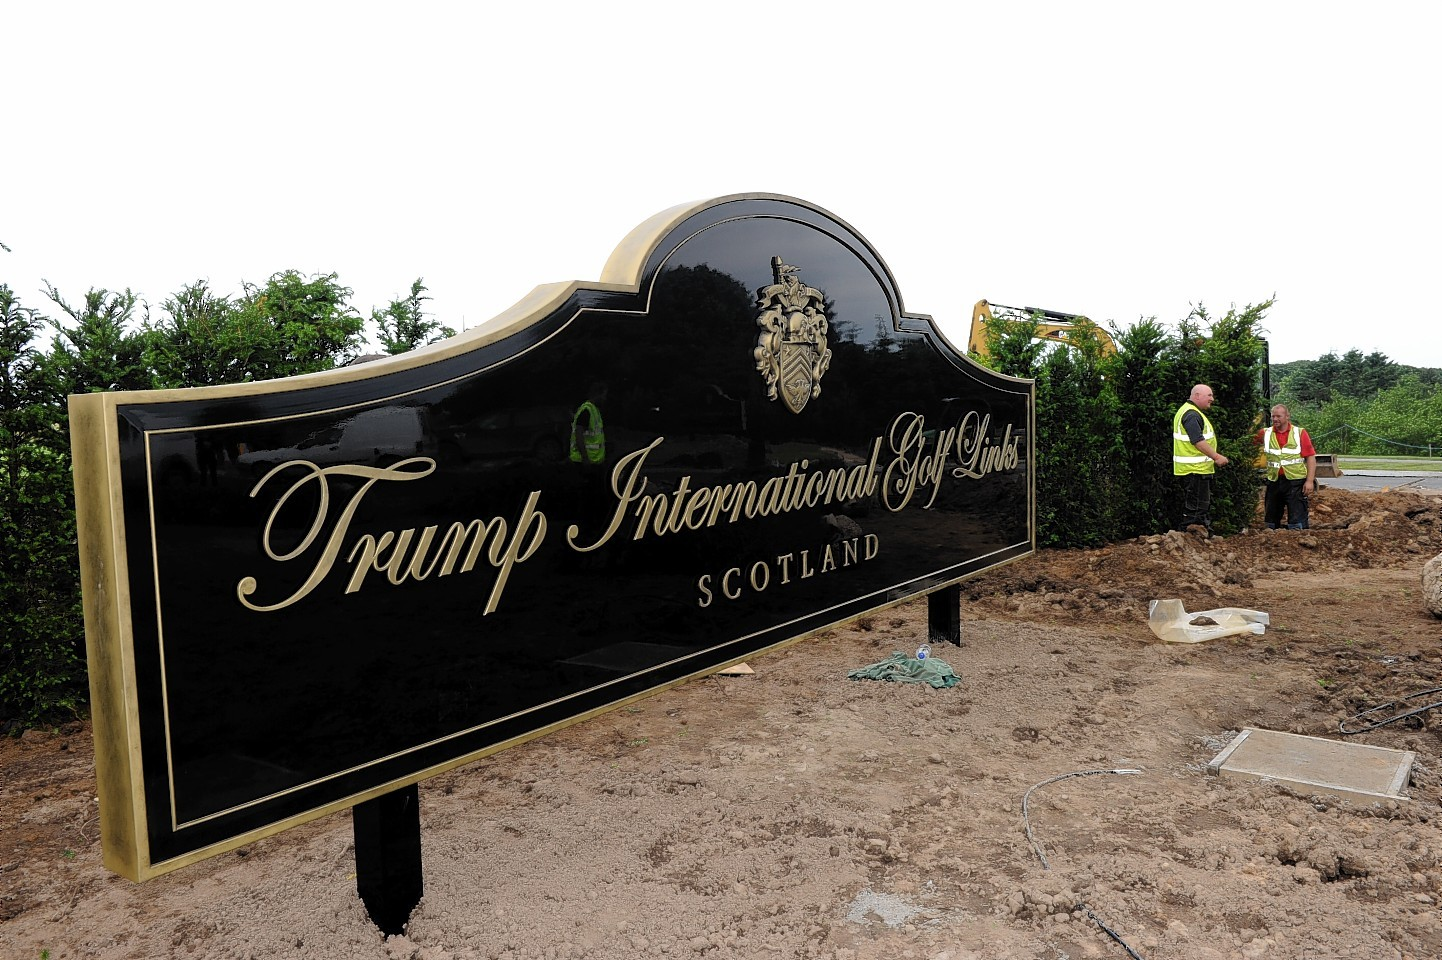 The crash happened close to the entrance to Trump International